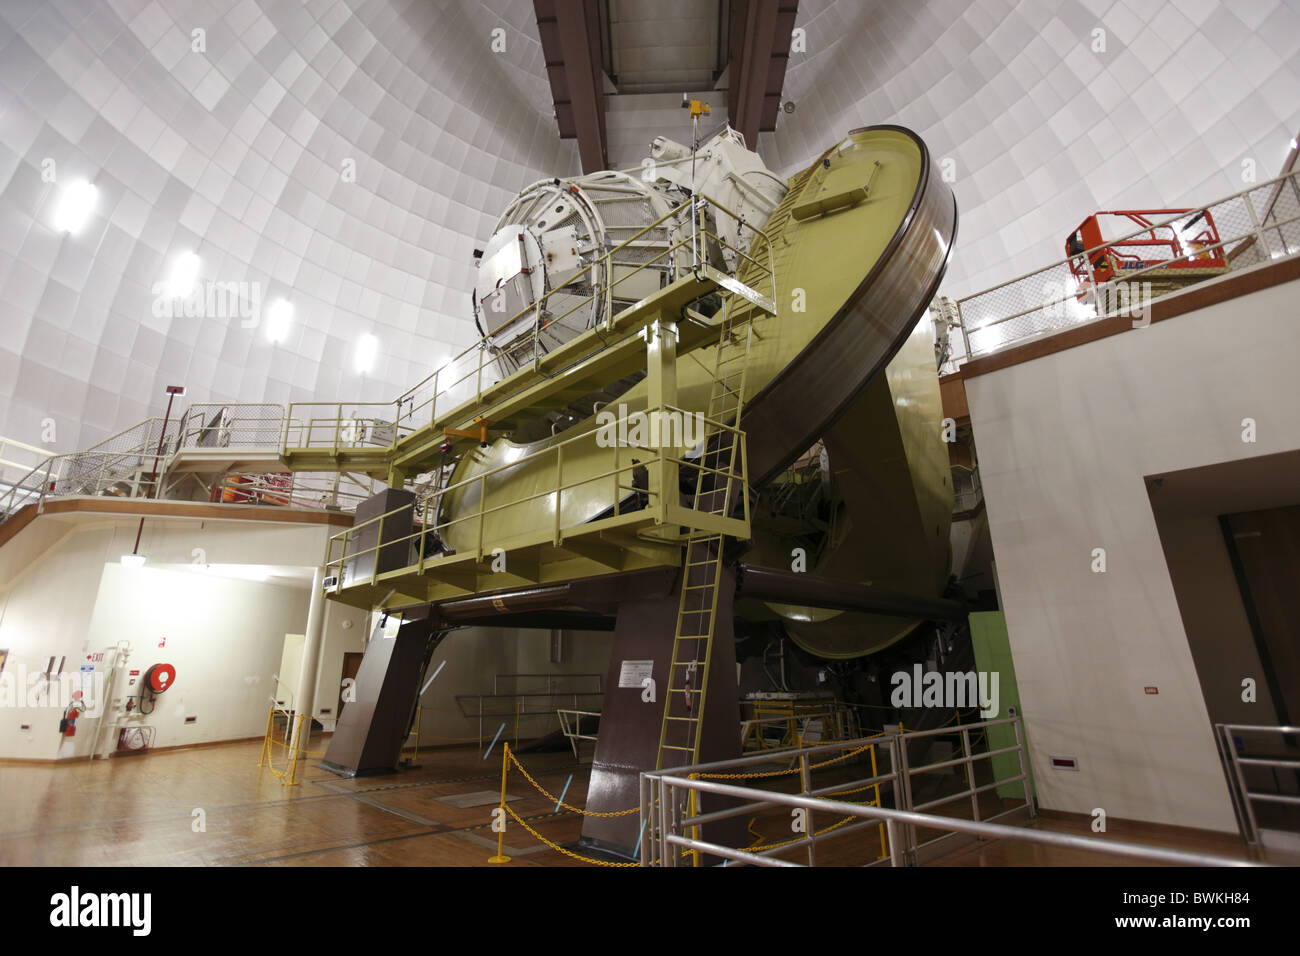 Australia, New South Wales, Coonabarabran, Siding Spring Observatory, Astronomy and Astrophysics Anglo-Australian - Stock Image